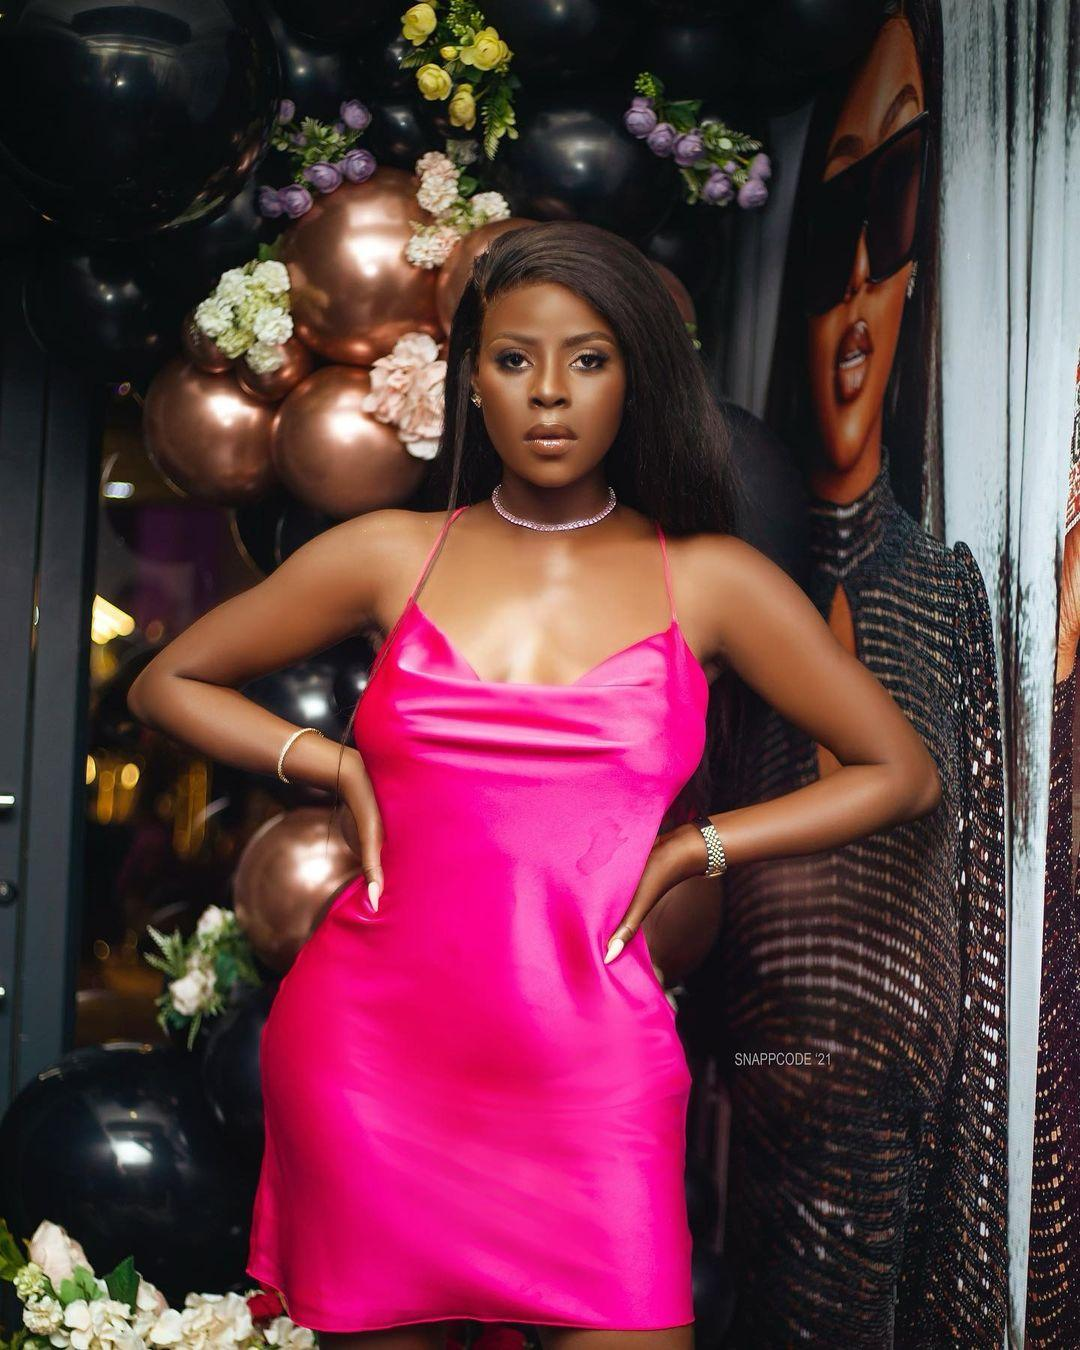 If you can't afford my lifestyle, don't tell me about relationship - BBN star, Khloe rants